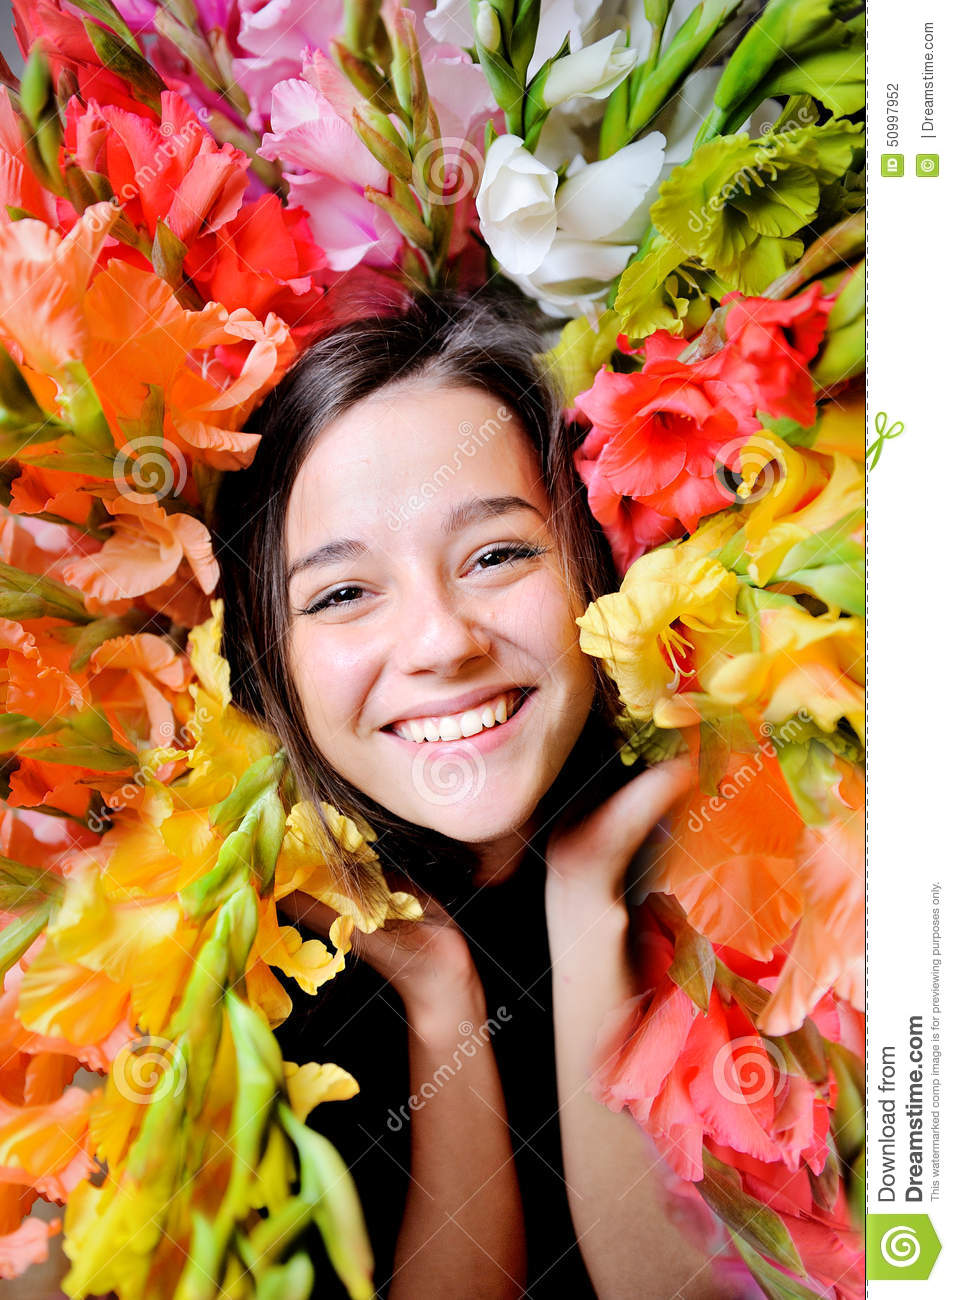 Flower Girl Stock Photo Image Of Background Clean Fashion 50997952